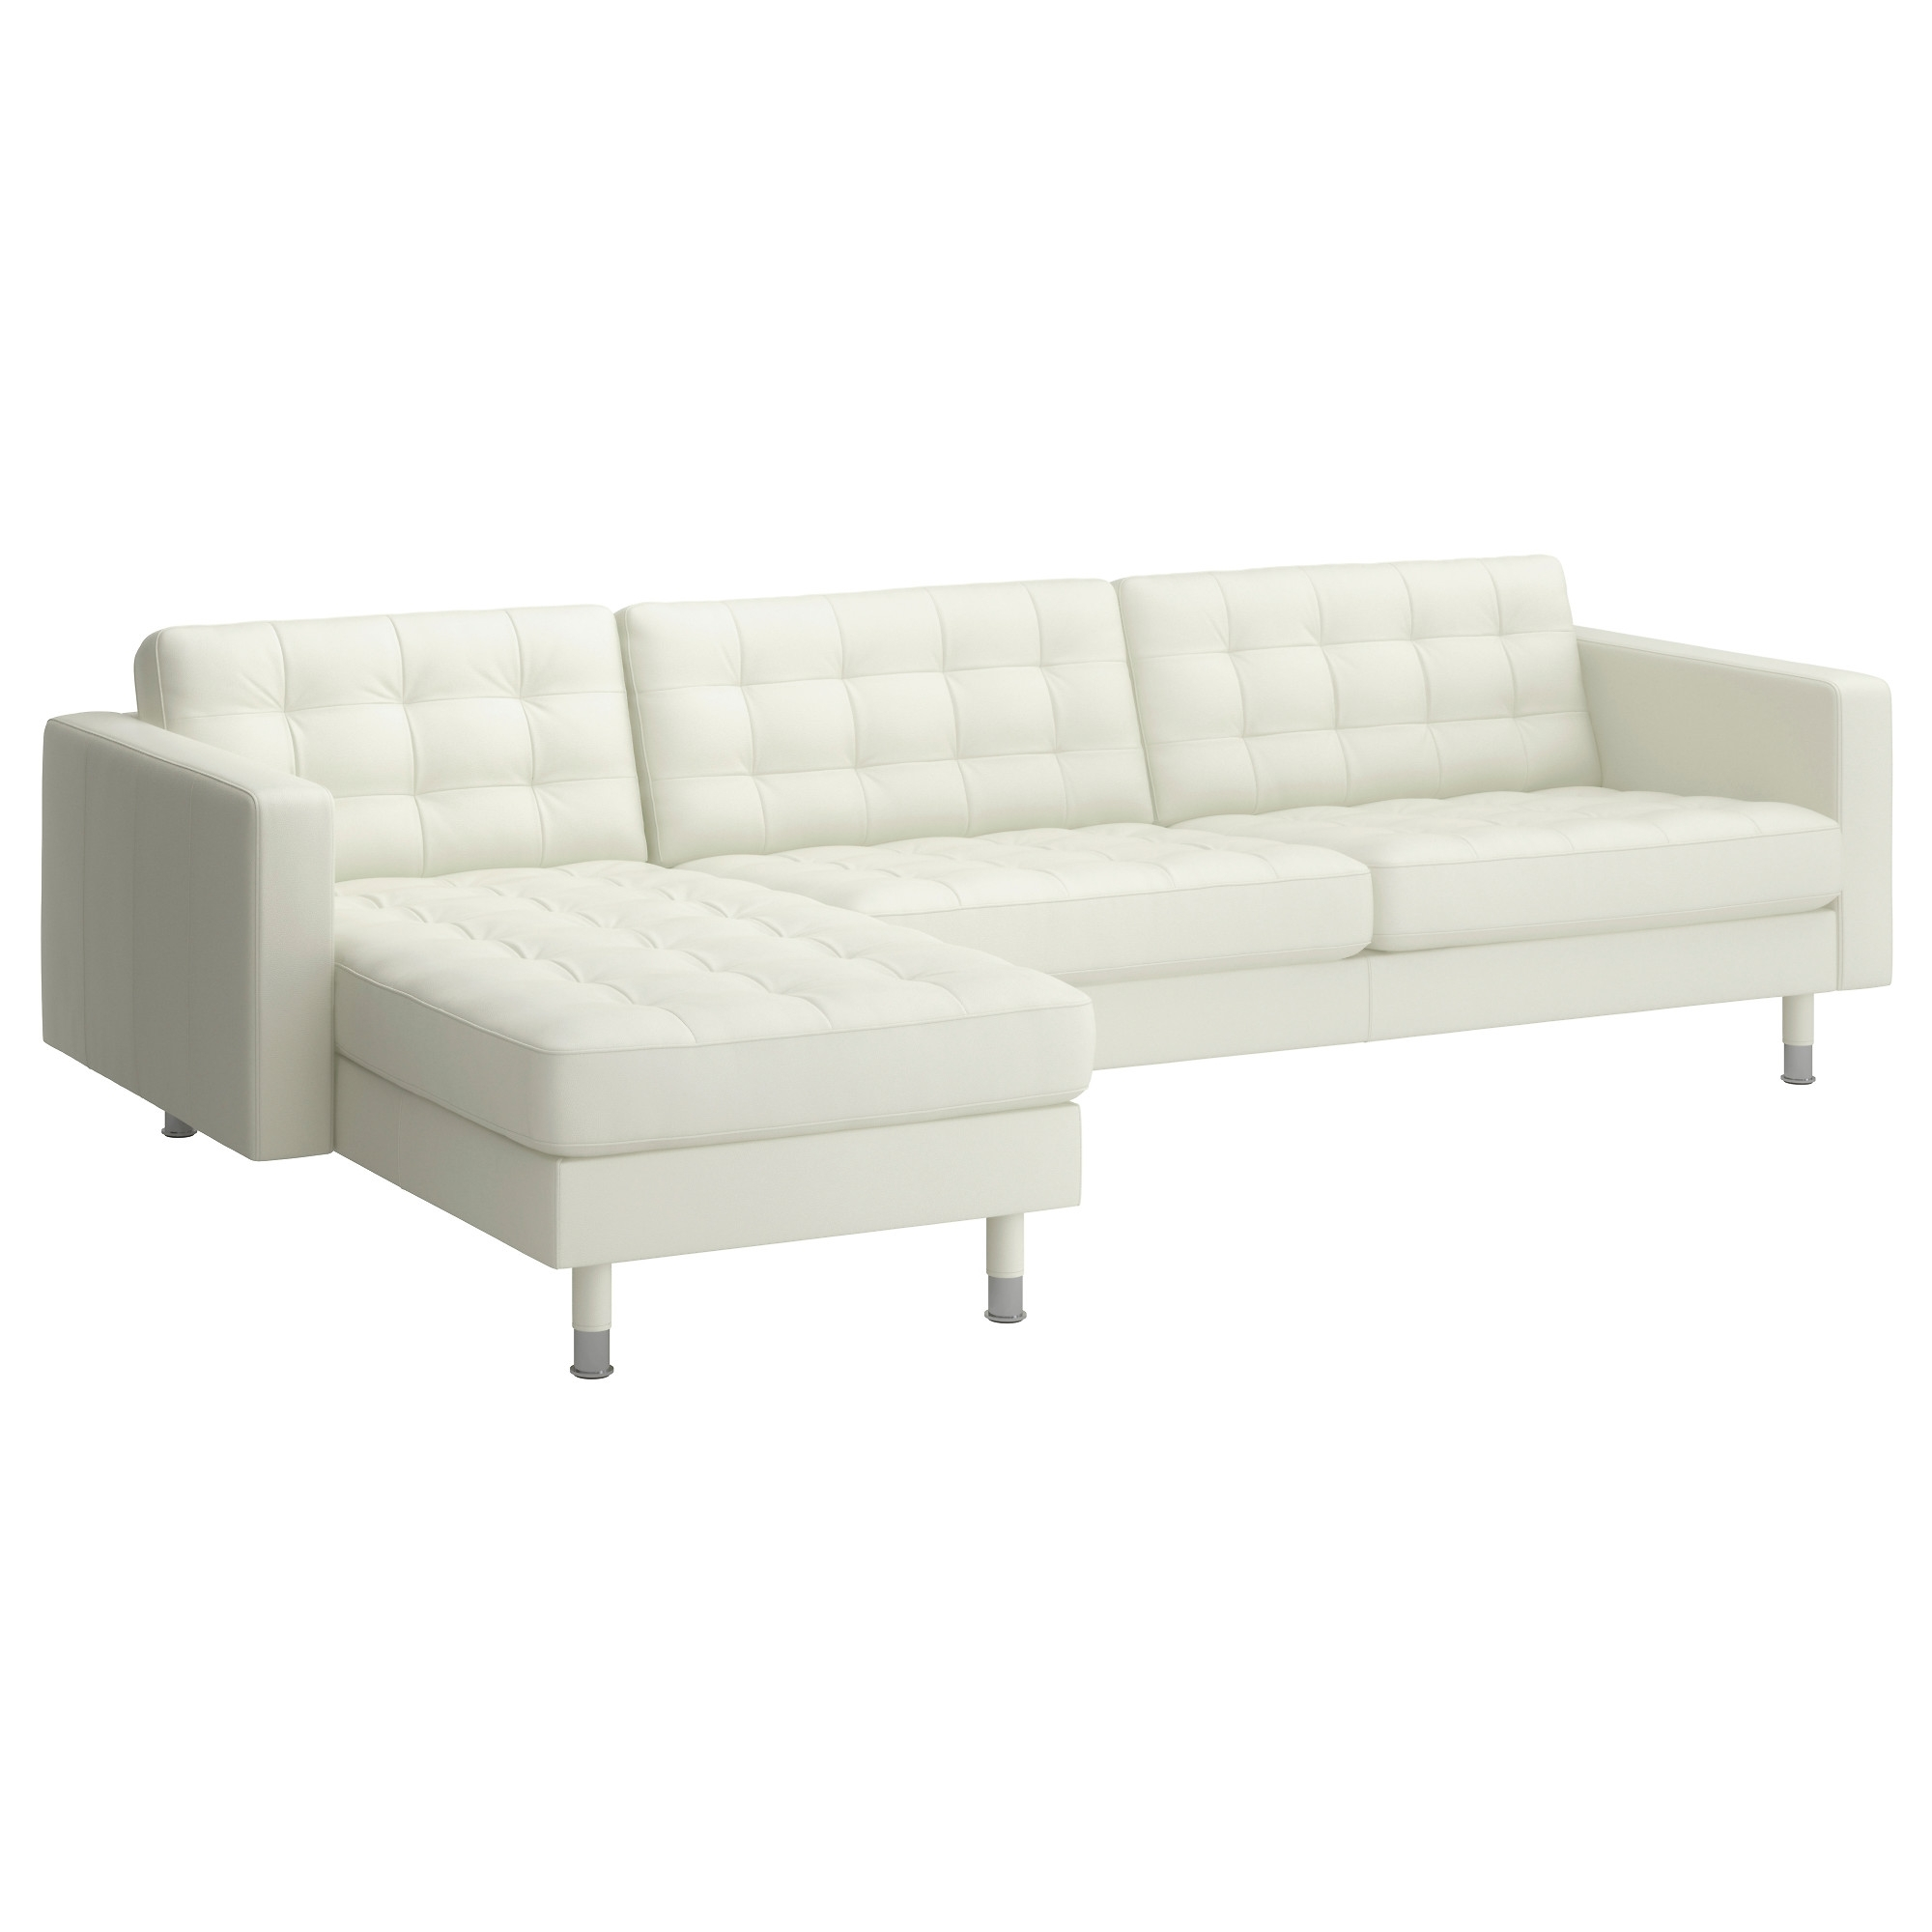 2018 White Leather Chaises Pertaining To Landskrona Sectional, 4 Seat – Grann/bomstad White, Metal – Ikea (View 3 of 15)